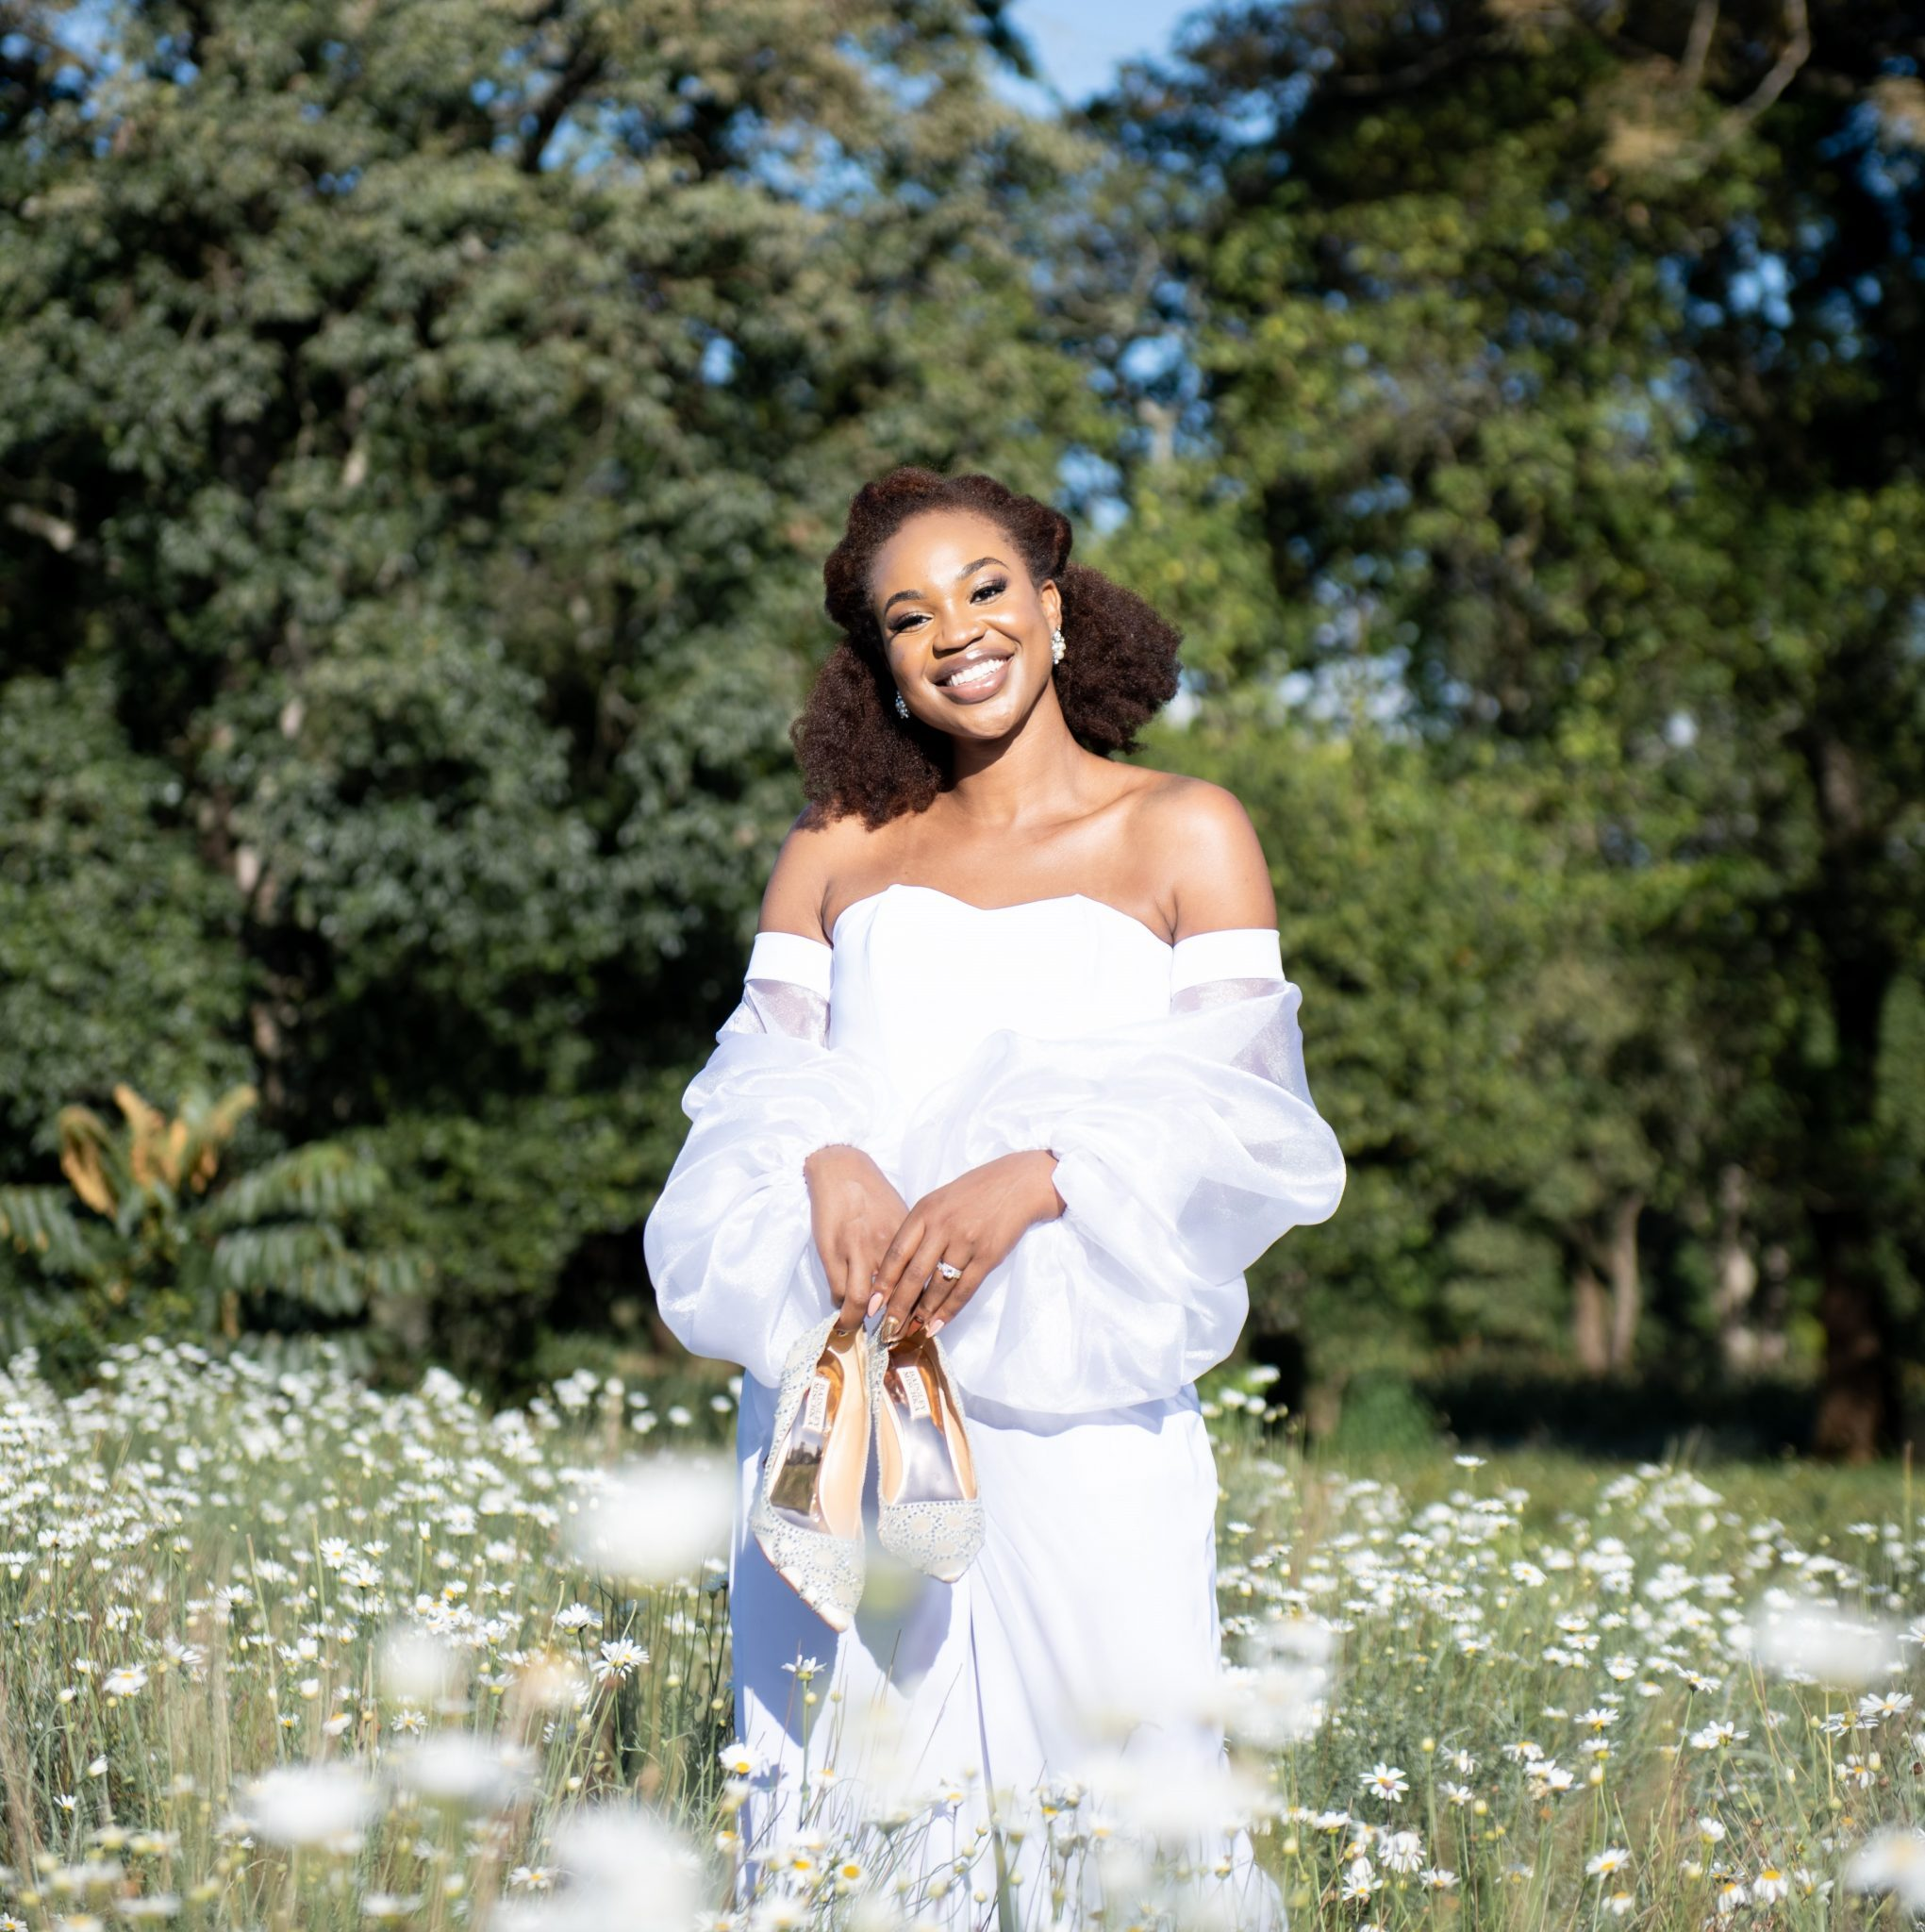 Ijeoma Kola posing in a field of flowers in re-created wedding hairstyle, make-up and outfit